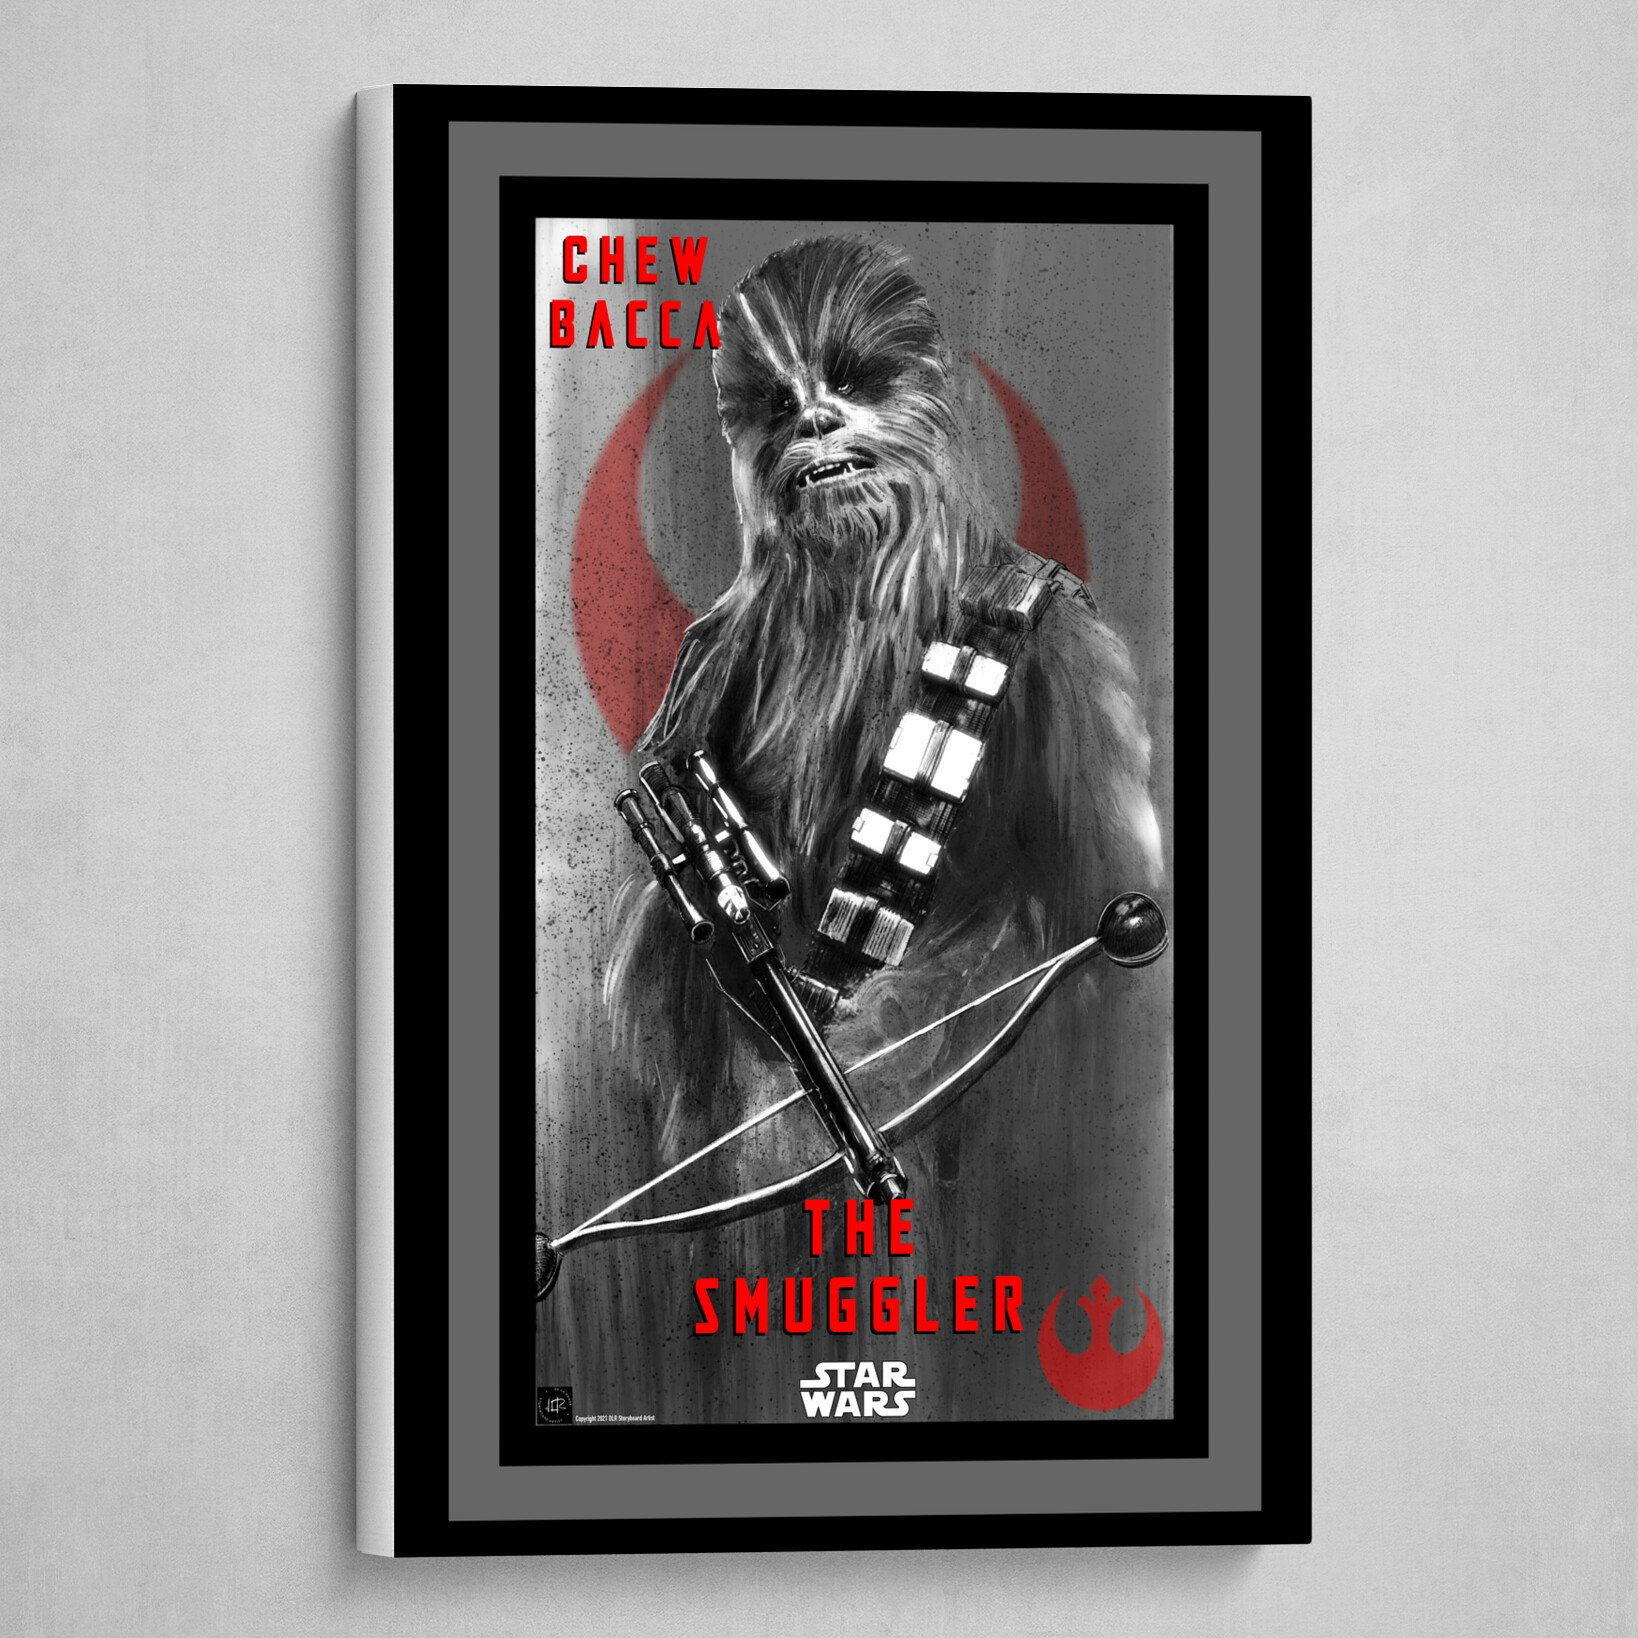 Chewbacca Poster in B&W with Red